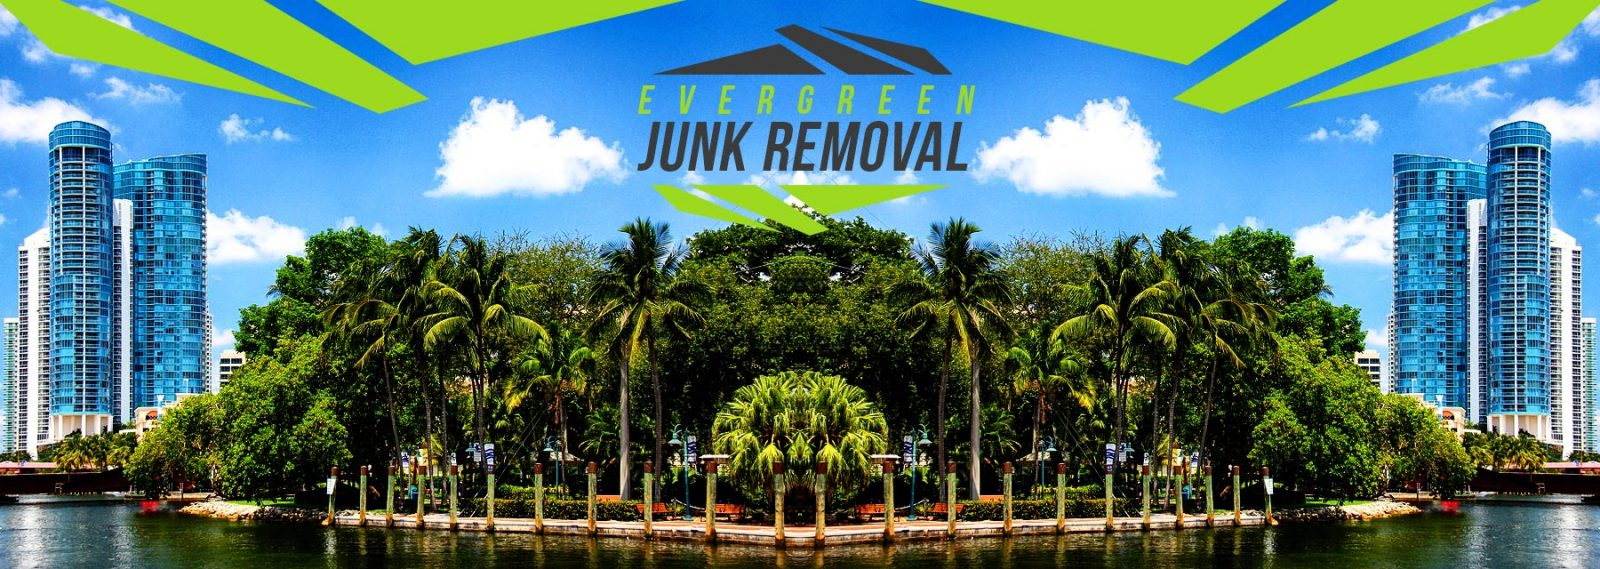 Bal Harbour Hot Tub Removal Company